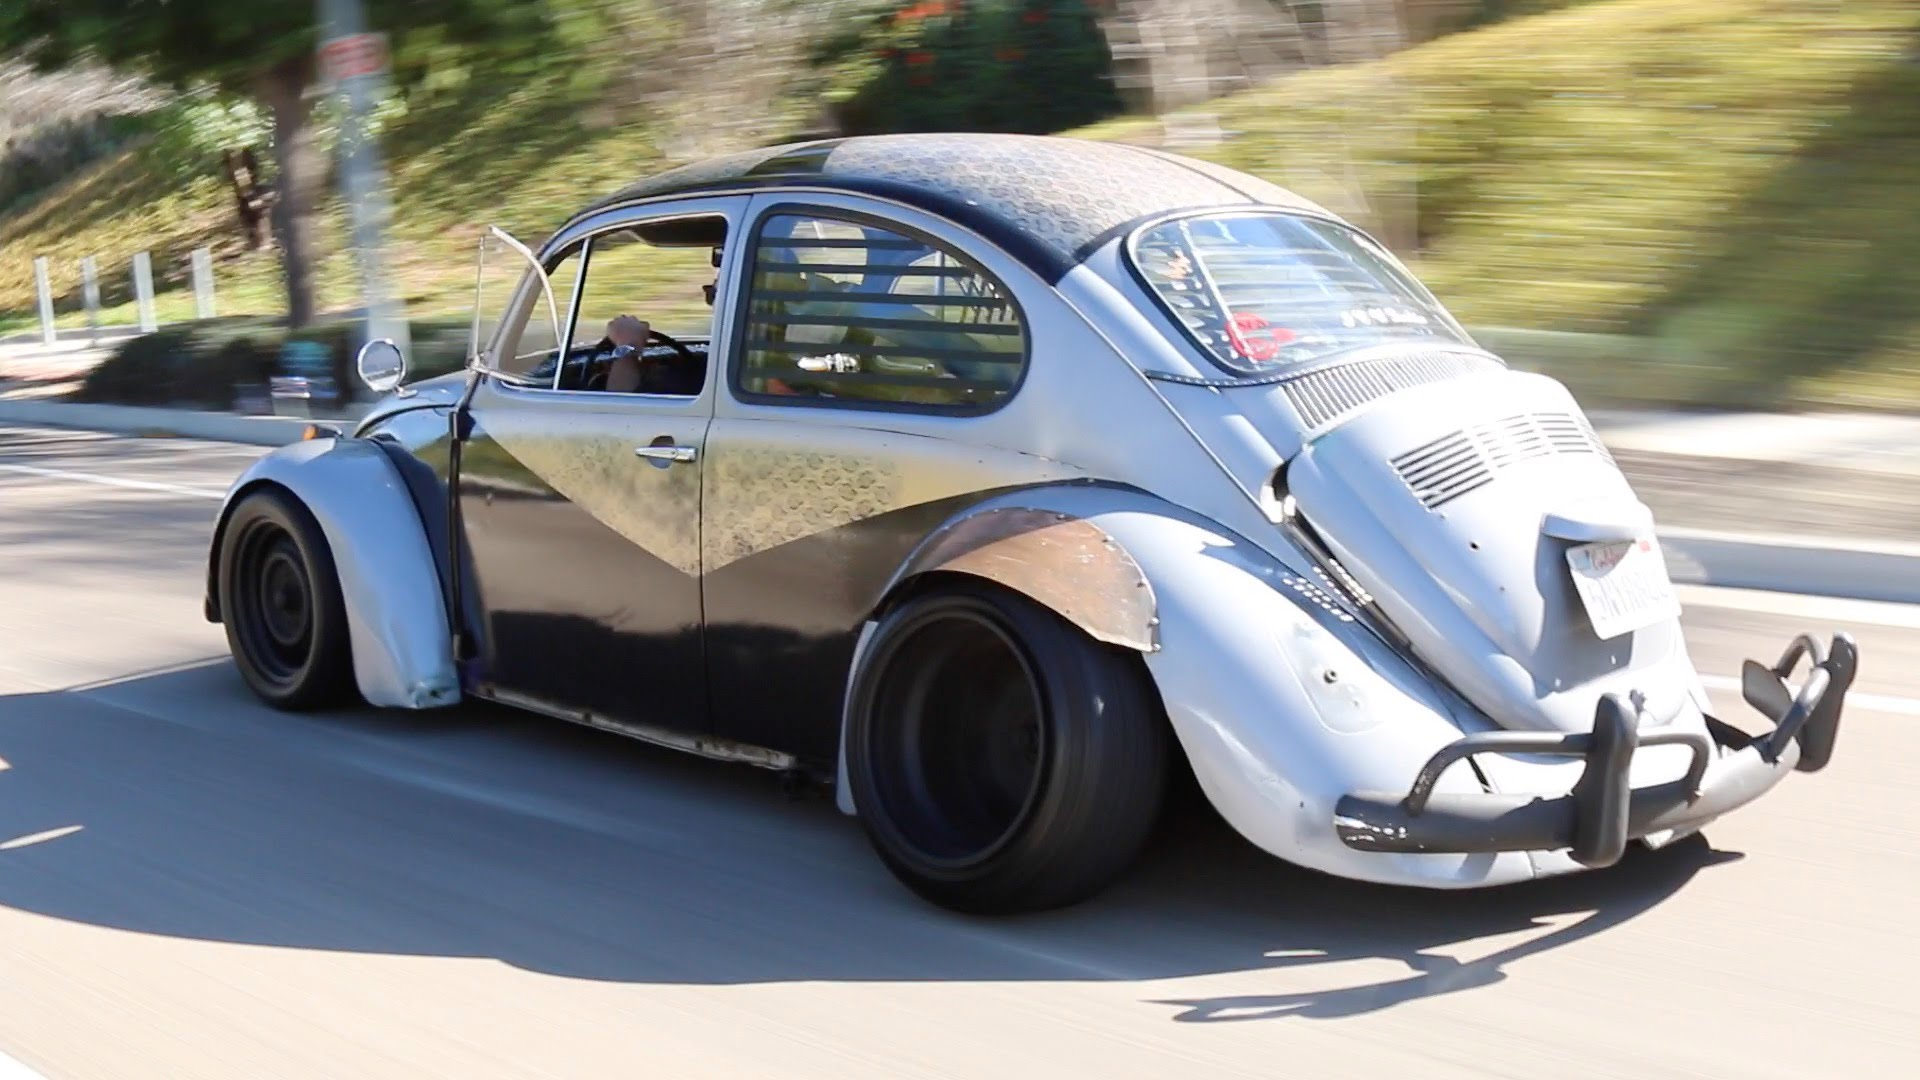 1968 vw beetle rat bug is the coolest lil rat rod you will ever see